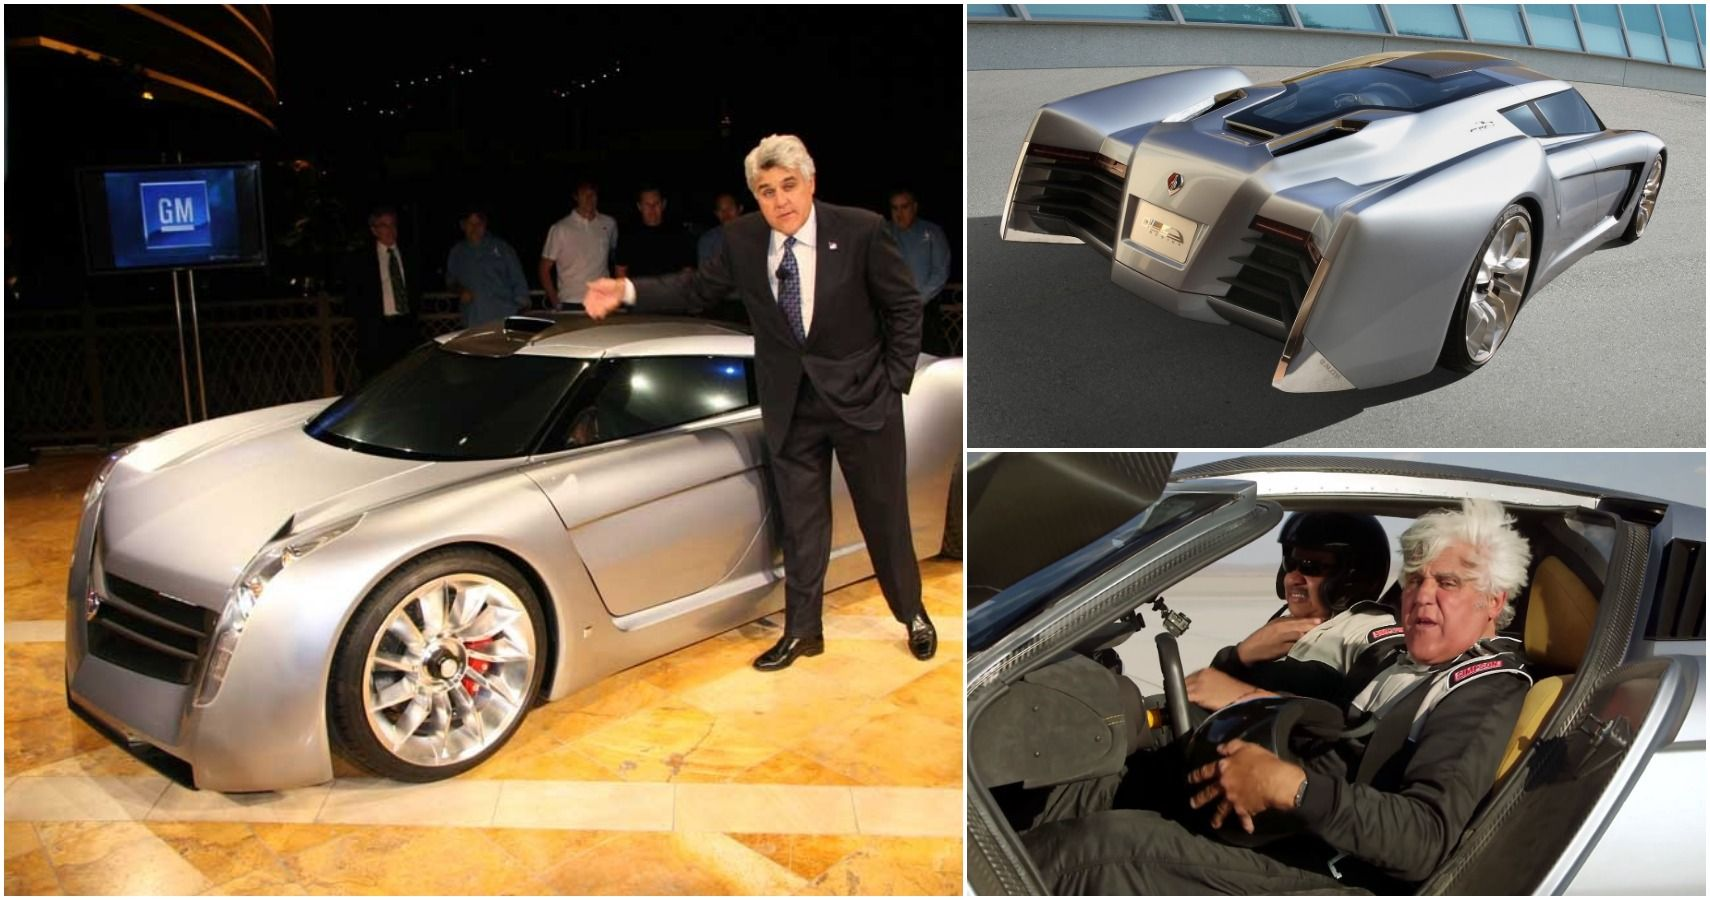 Jay Leno's EcoJet: 15 Incredible Facts We Just Learned